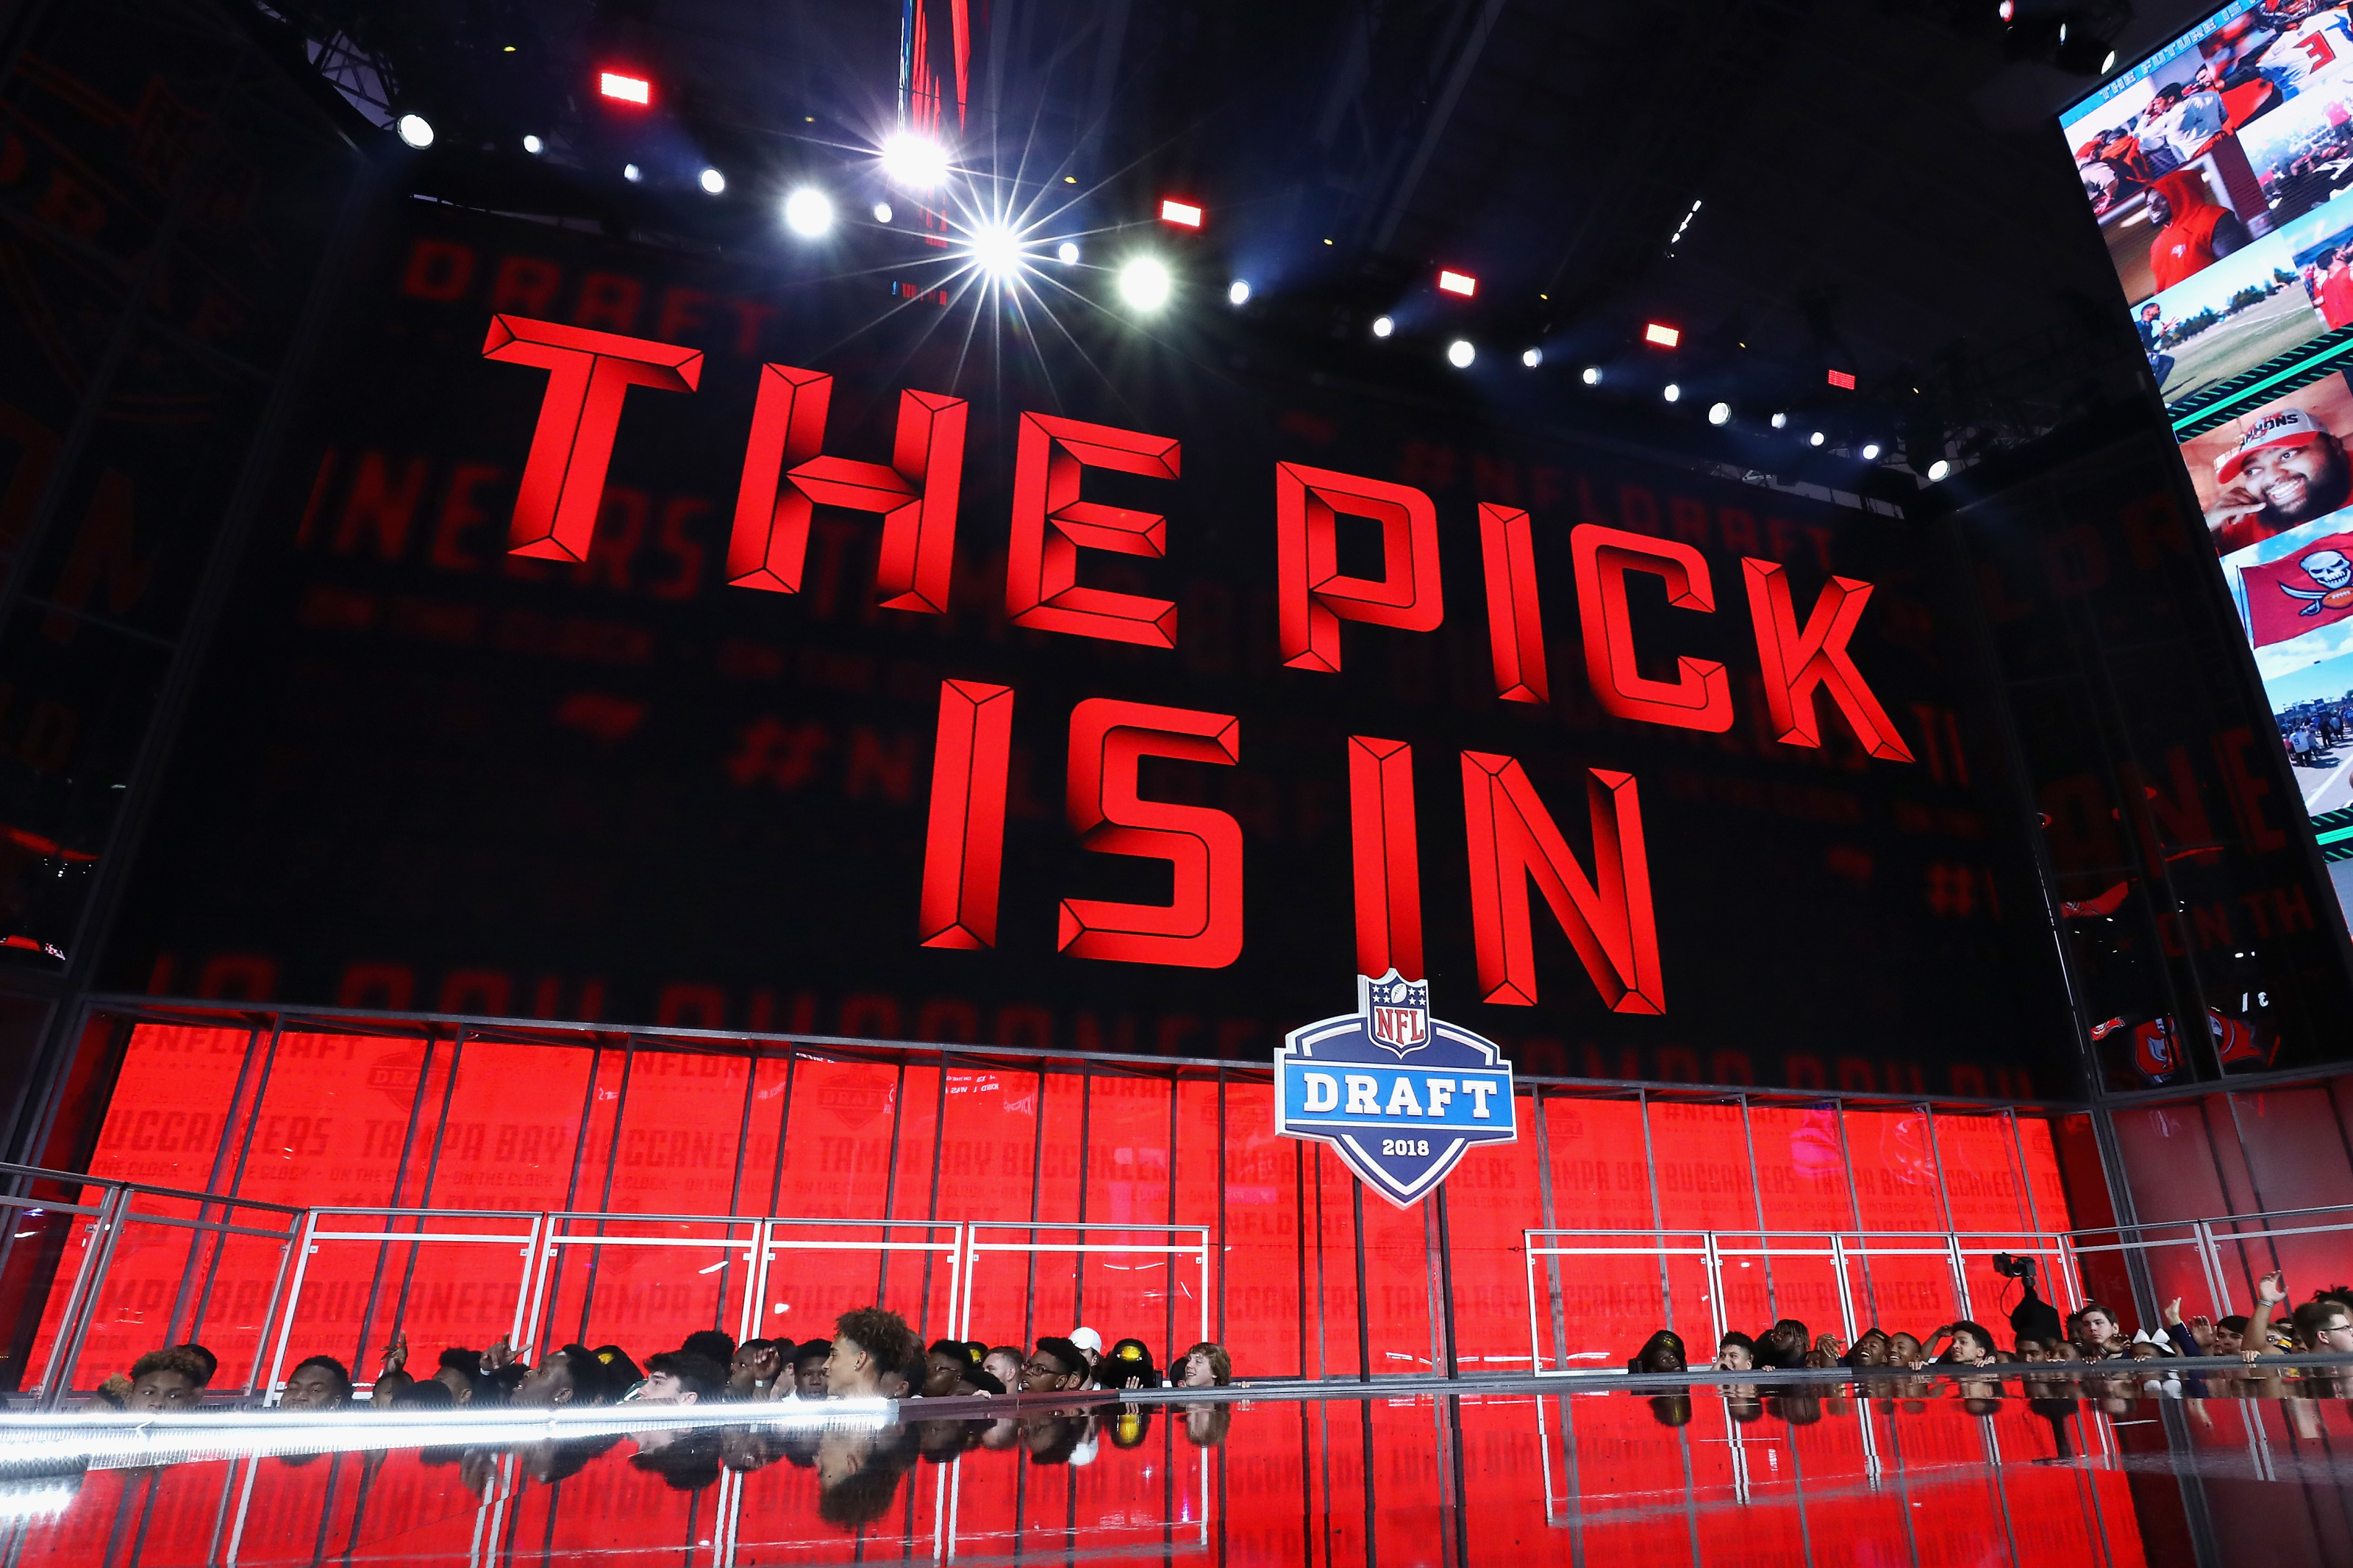 The 49ers present a slight draft issue for the Chiefs in first round